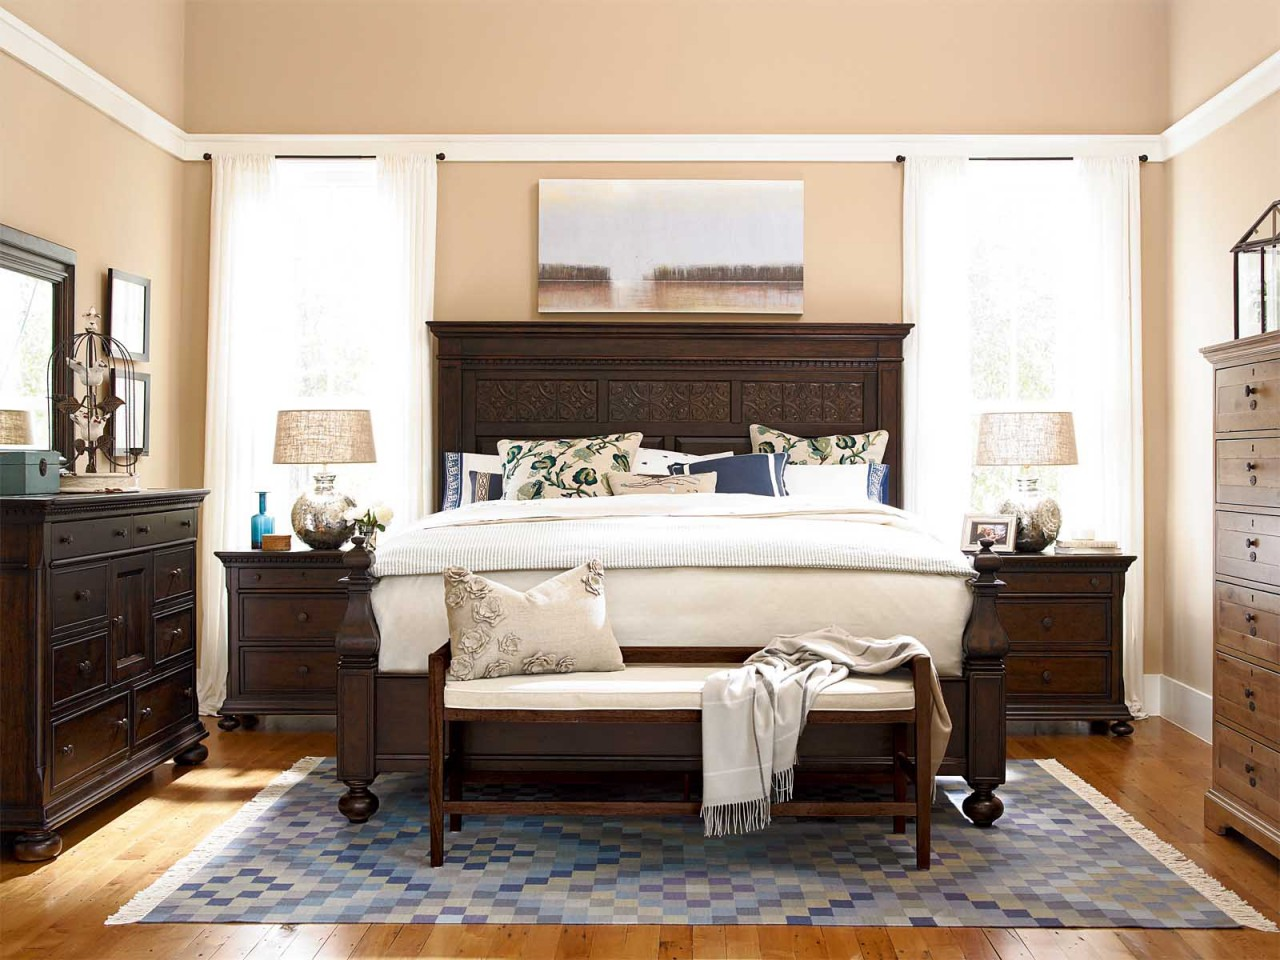 Image of: Paula deen bedroom furniture fixtures